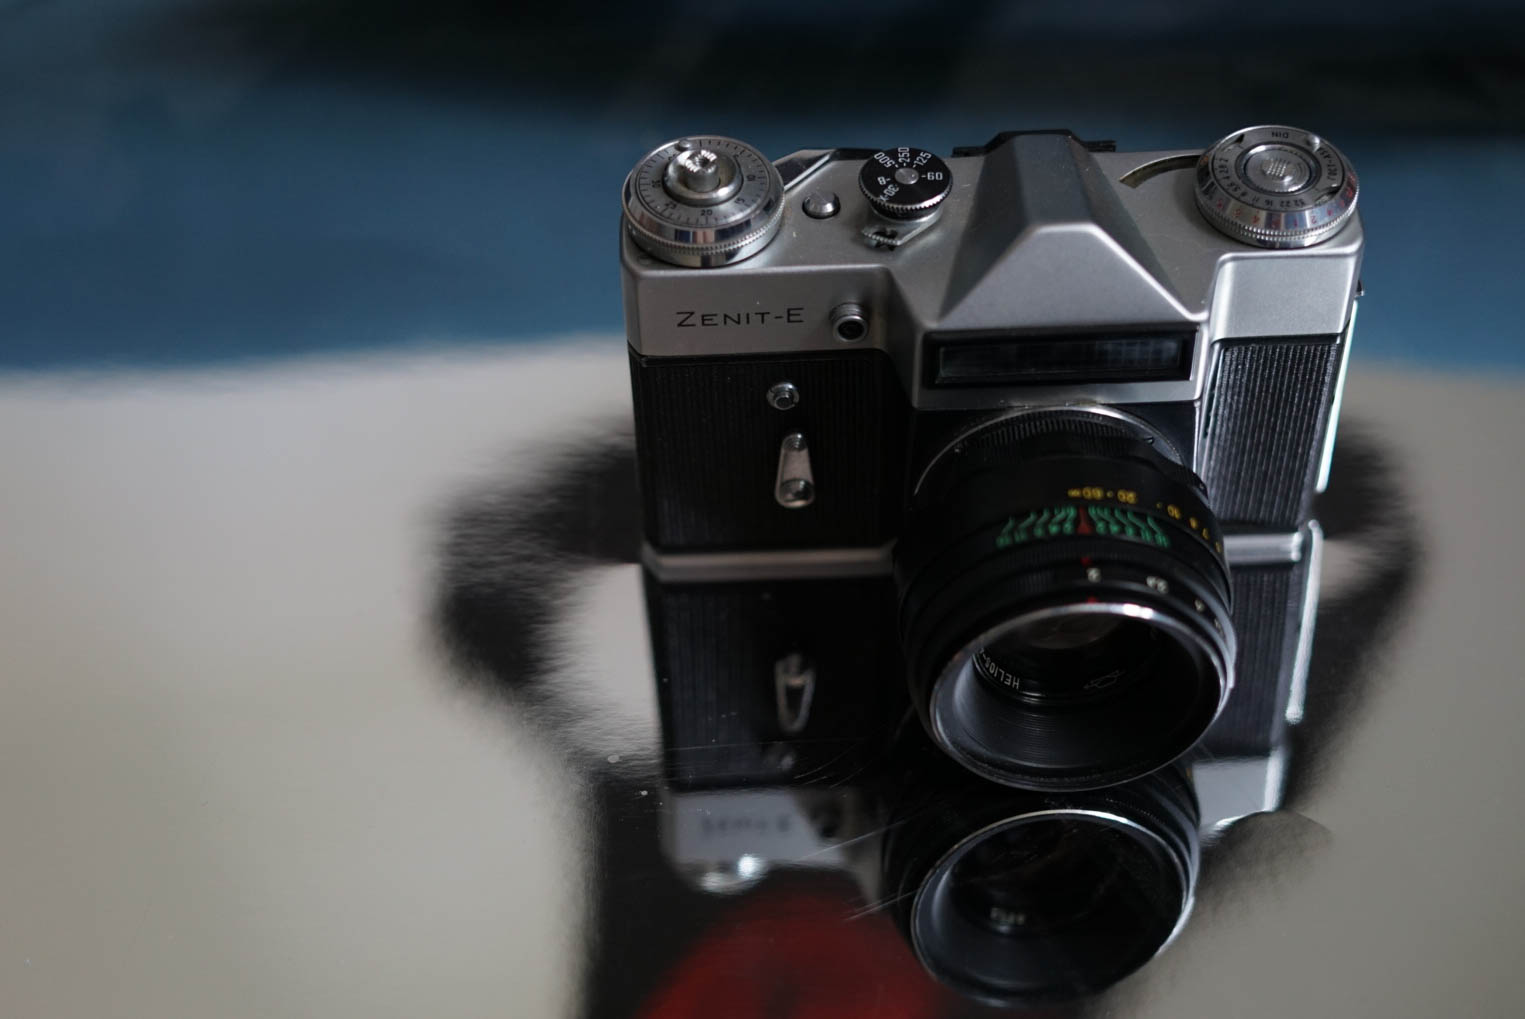 5 Frames With The Zenit E Built In The Ussr By Sacha Cloutier 35mmc